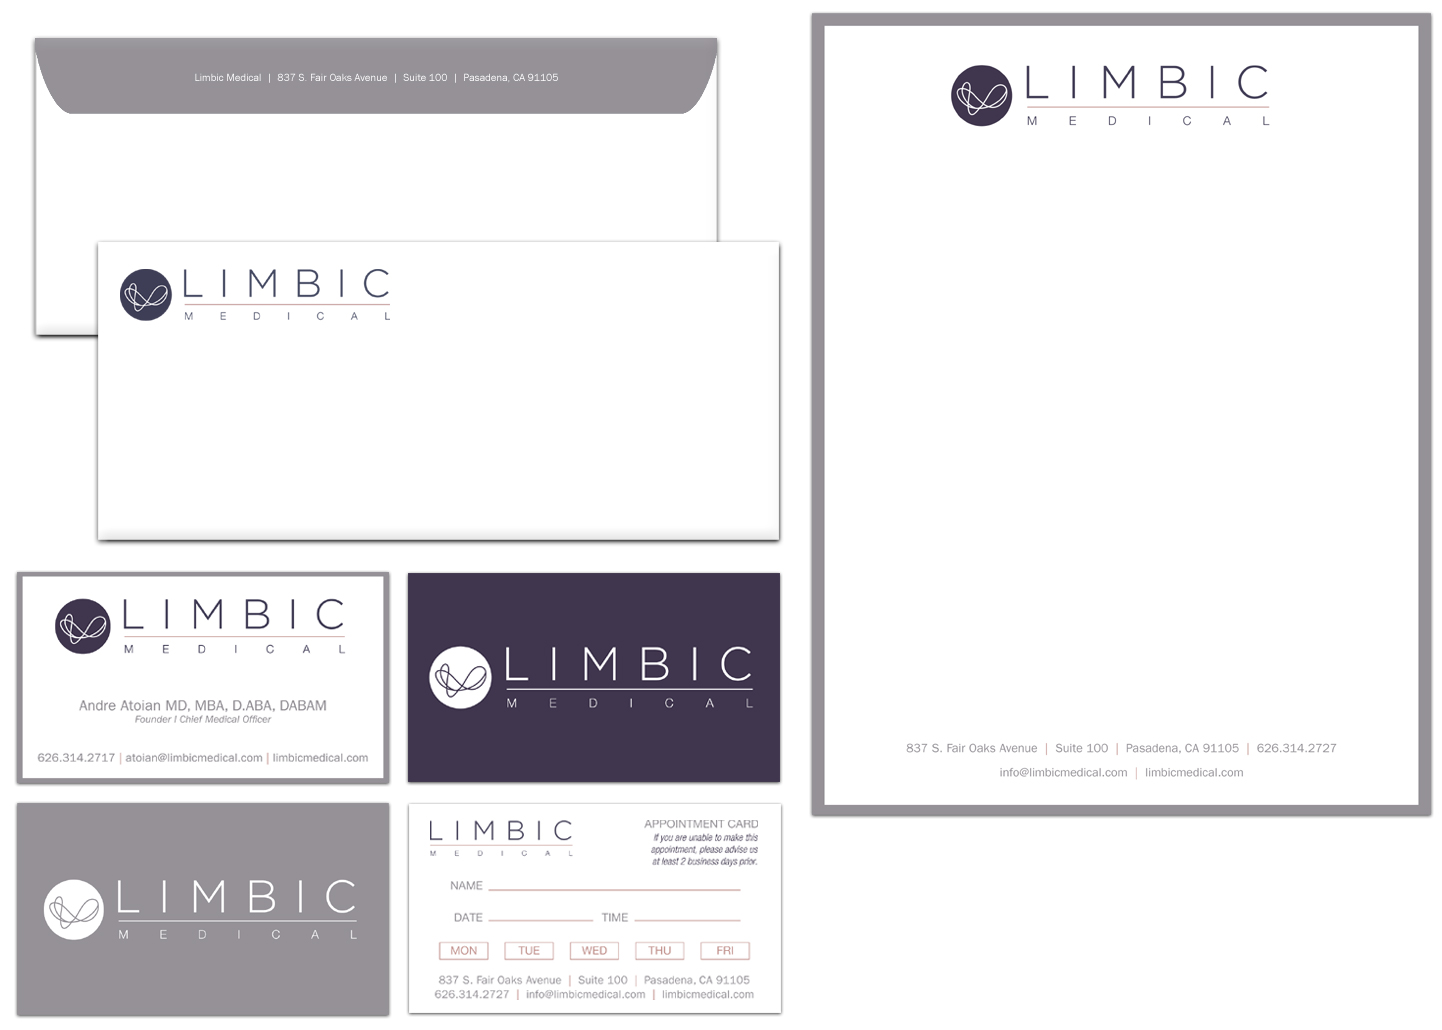 LIMBIC-BRAND-COLLATERAL